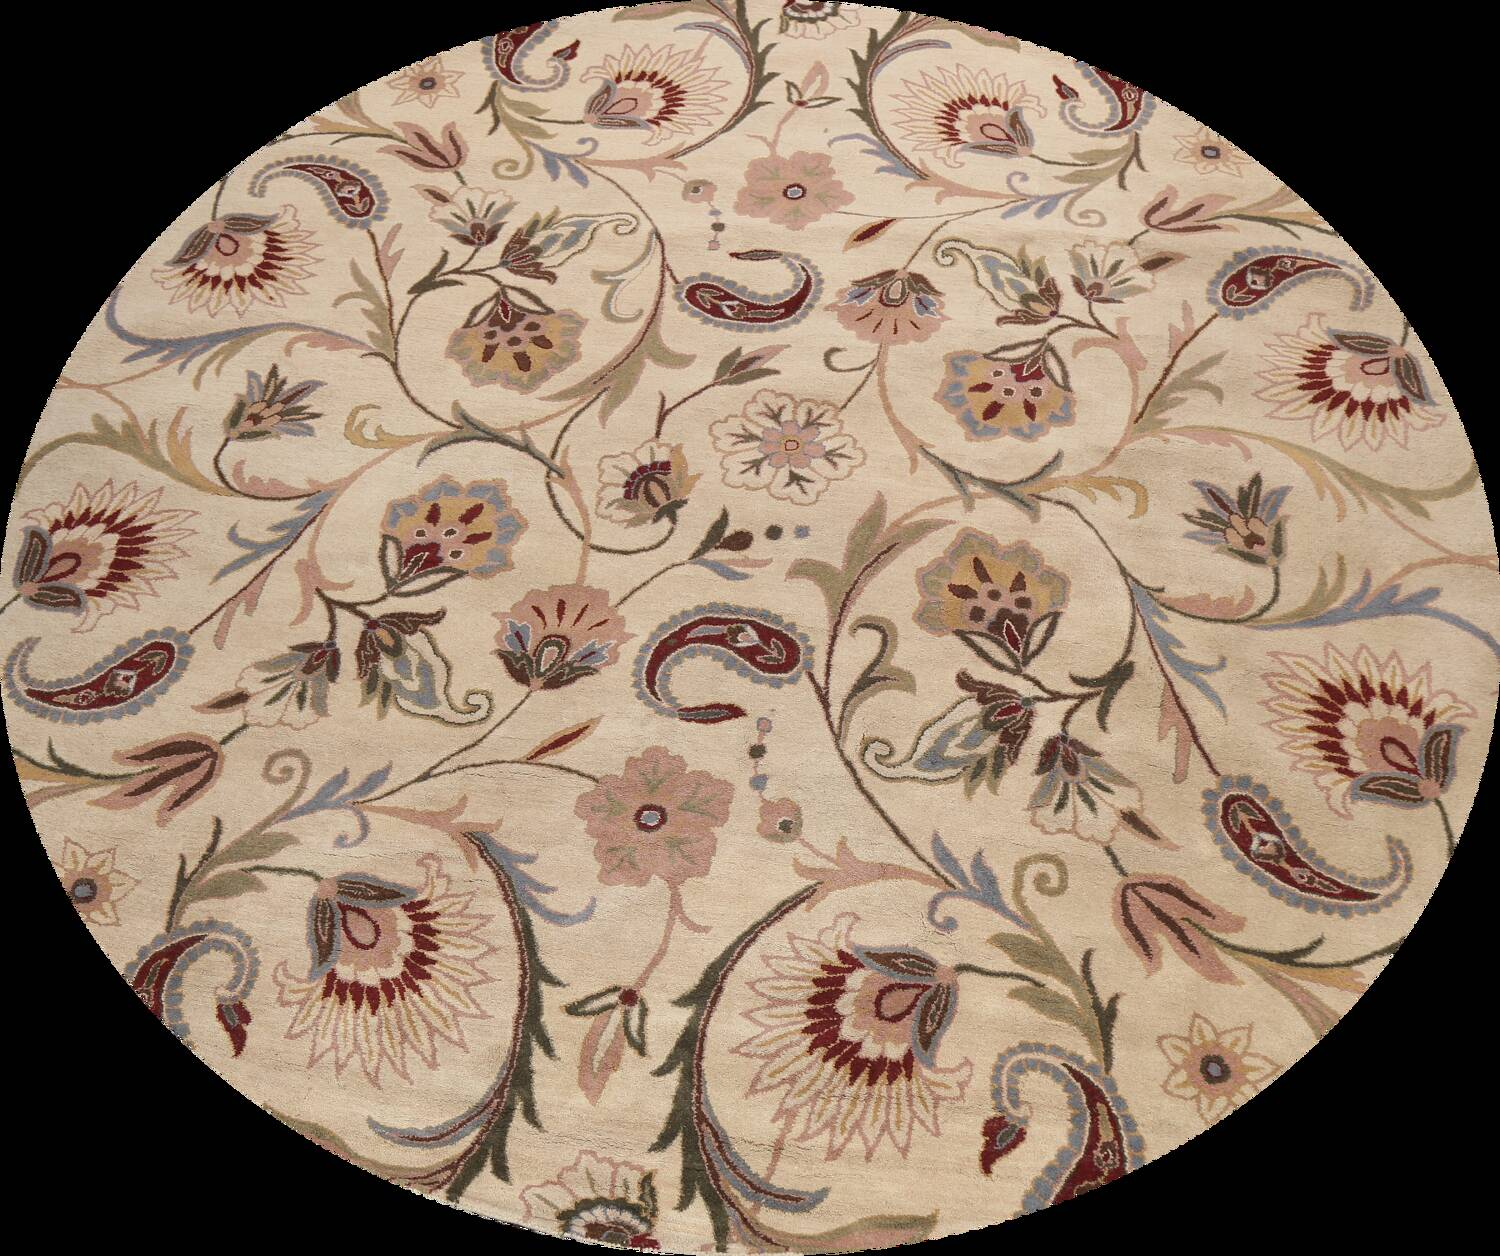 Floral Round Rug 12x12 image 1